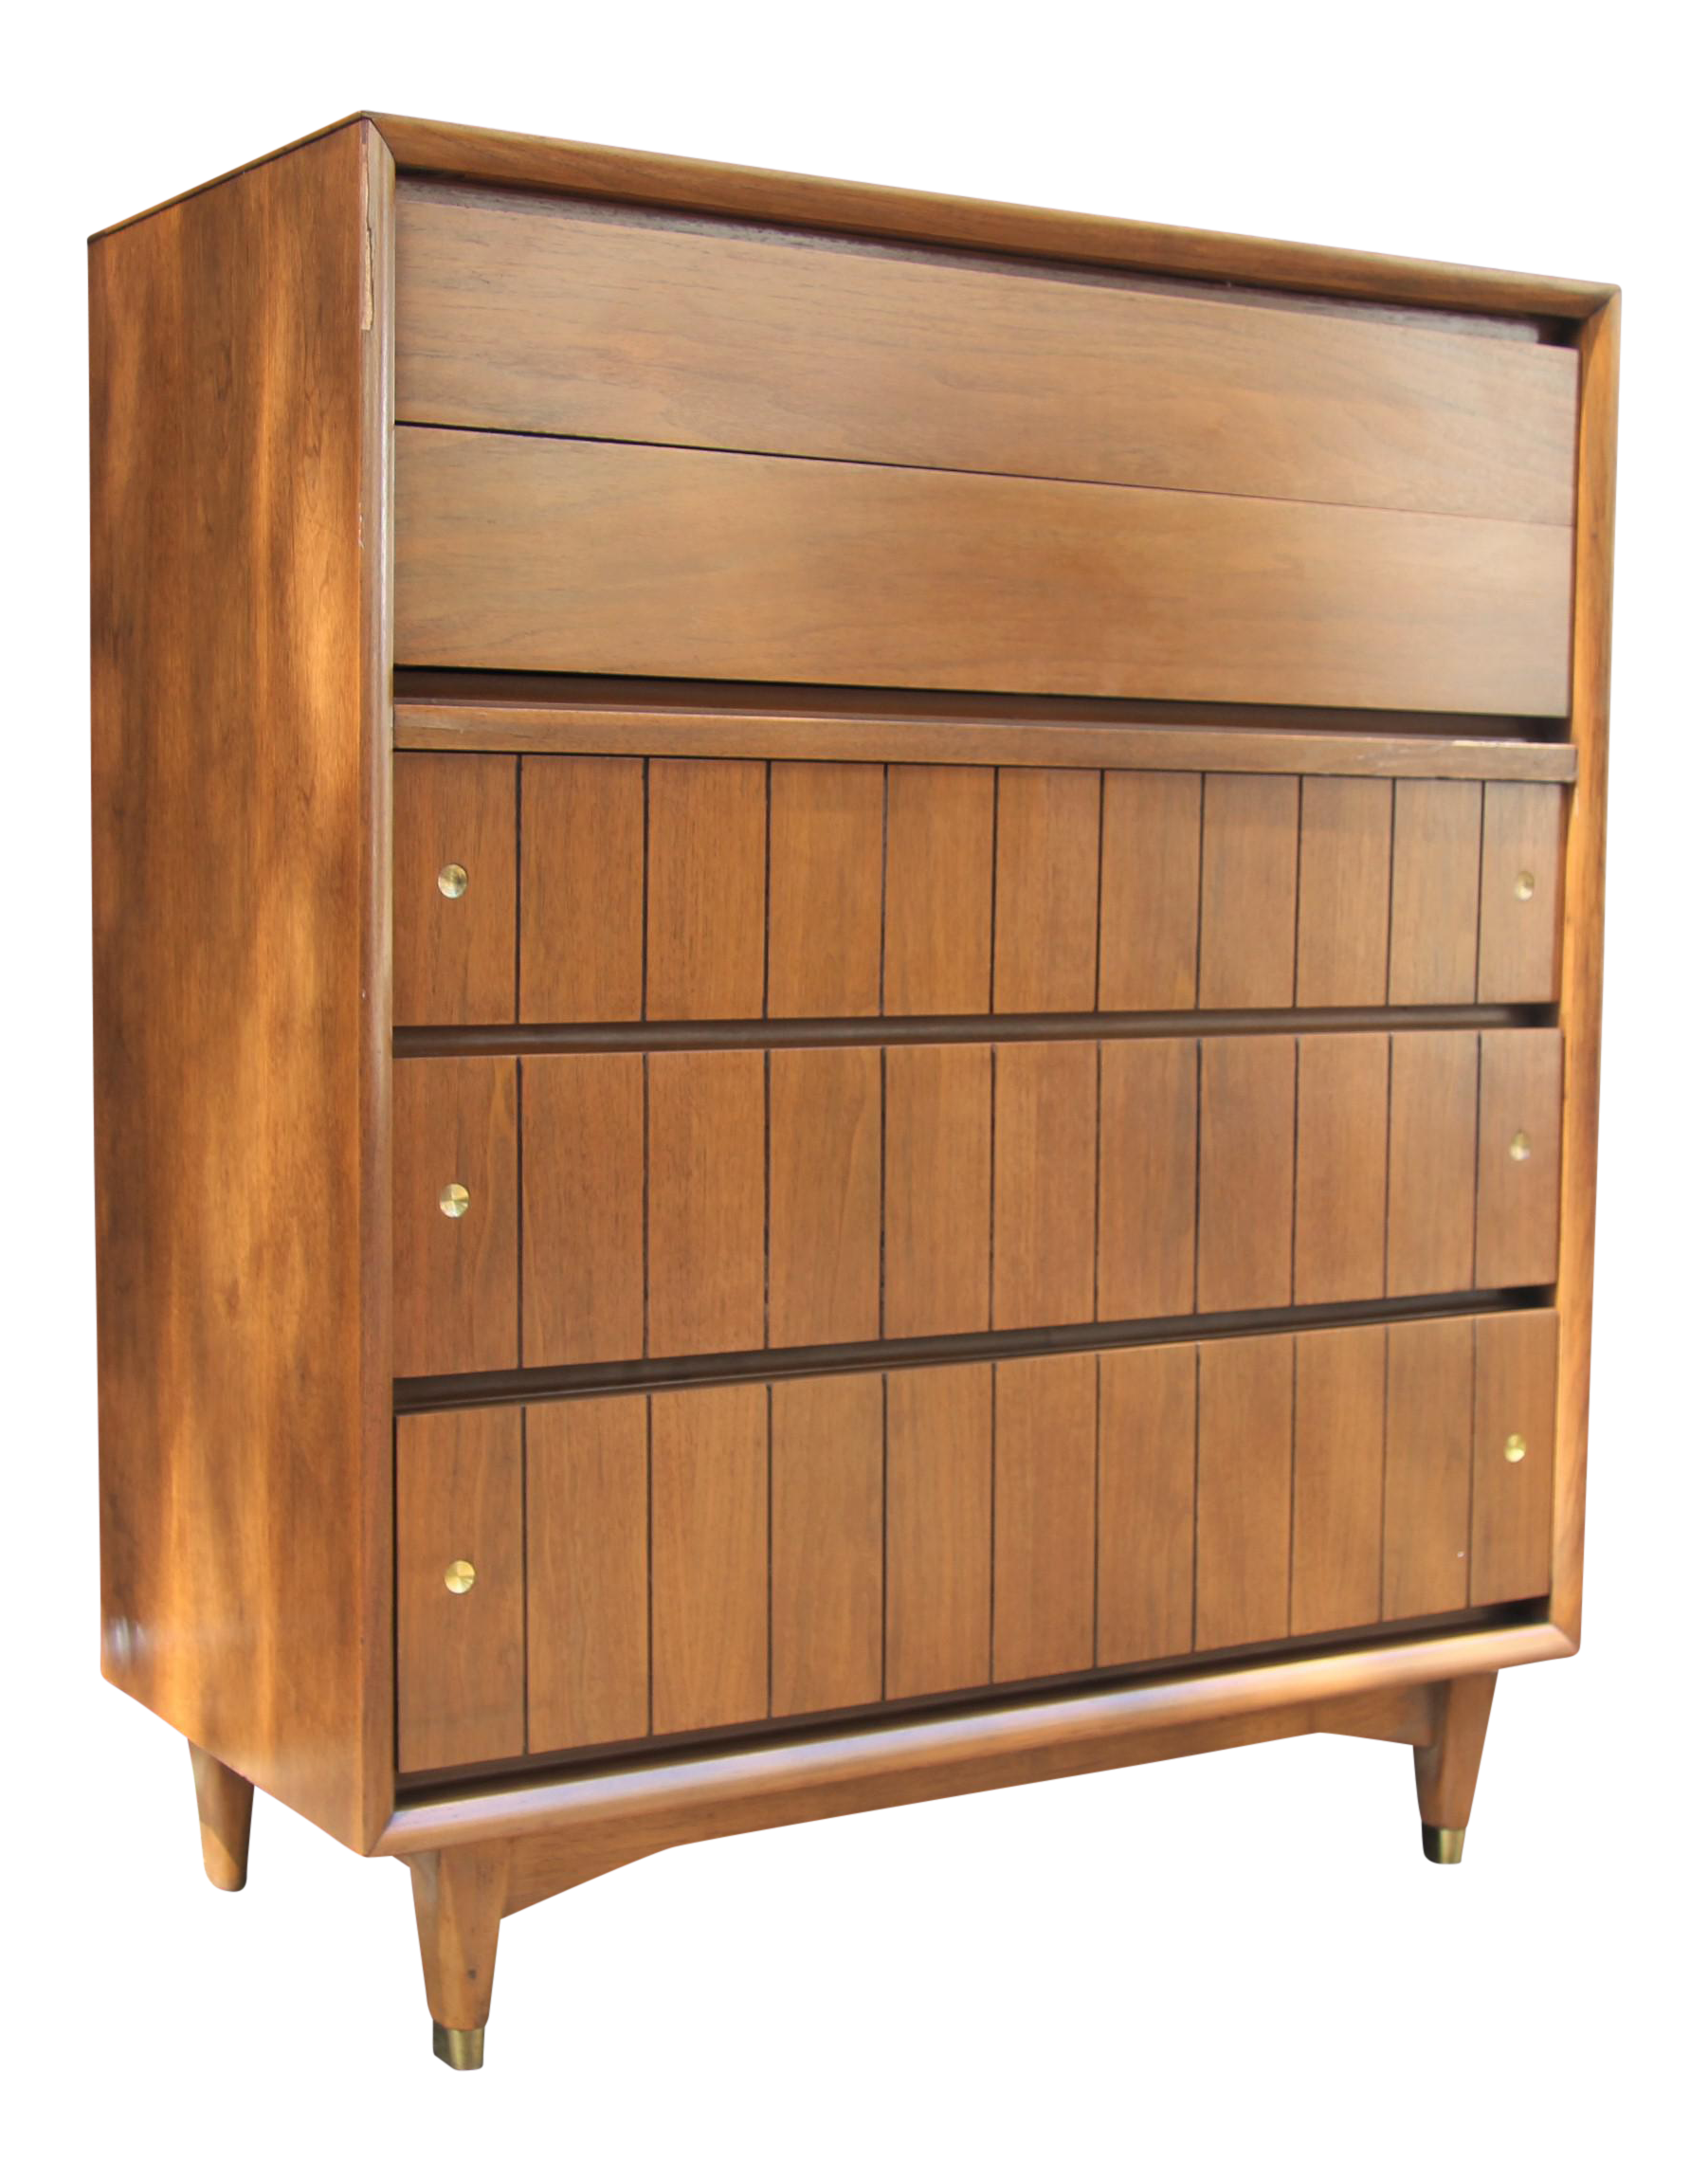 image of kroehler furniture midcentury highboy - Kroehler Furniture